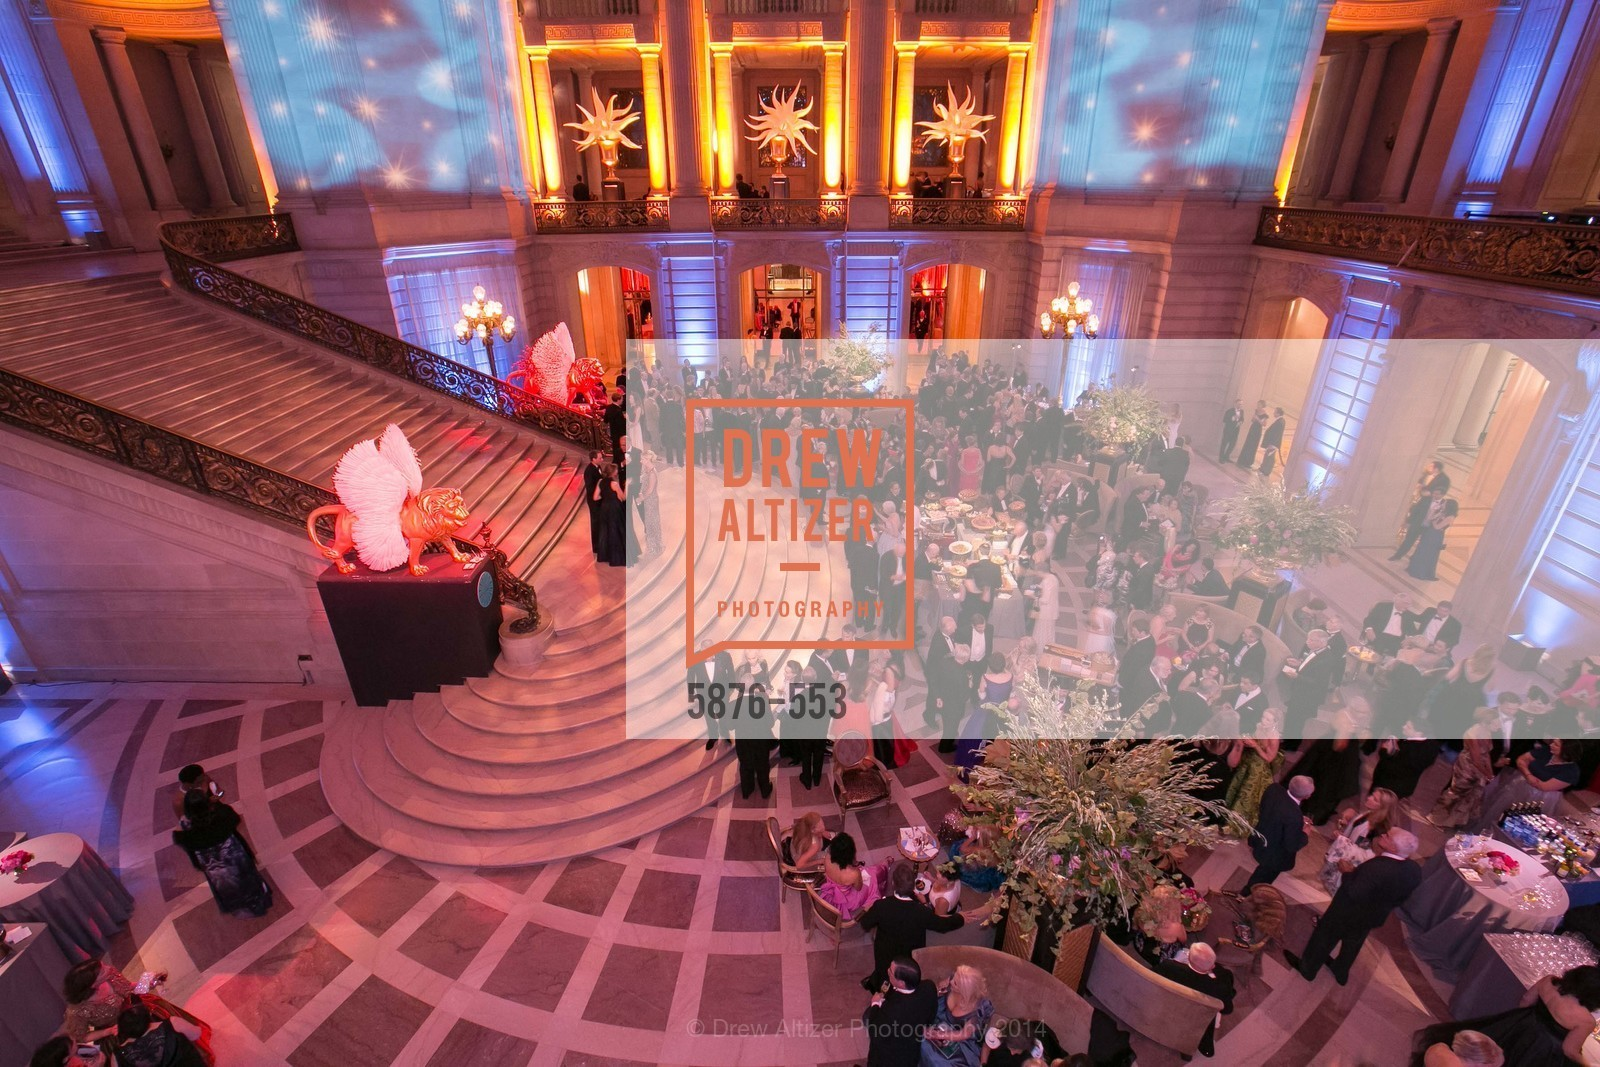 Atmosphere, SAN FRANCISCO OPERA'S 92nd Opera Ball 2014: PASSIONE, September 5th, 2014, Photo,Drew Altizer, Drew Altizer Photography, full-service event agency, private events, San Francisco photographer, photographer California